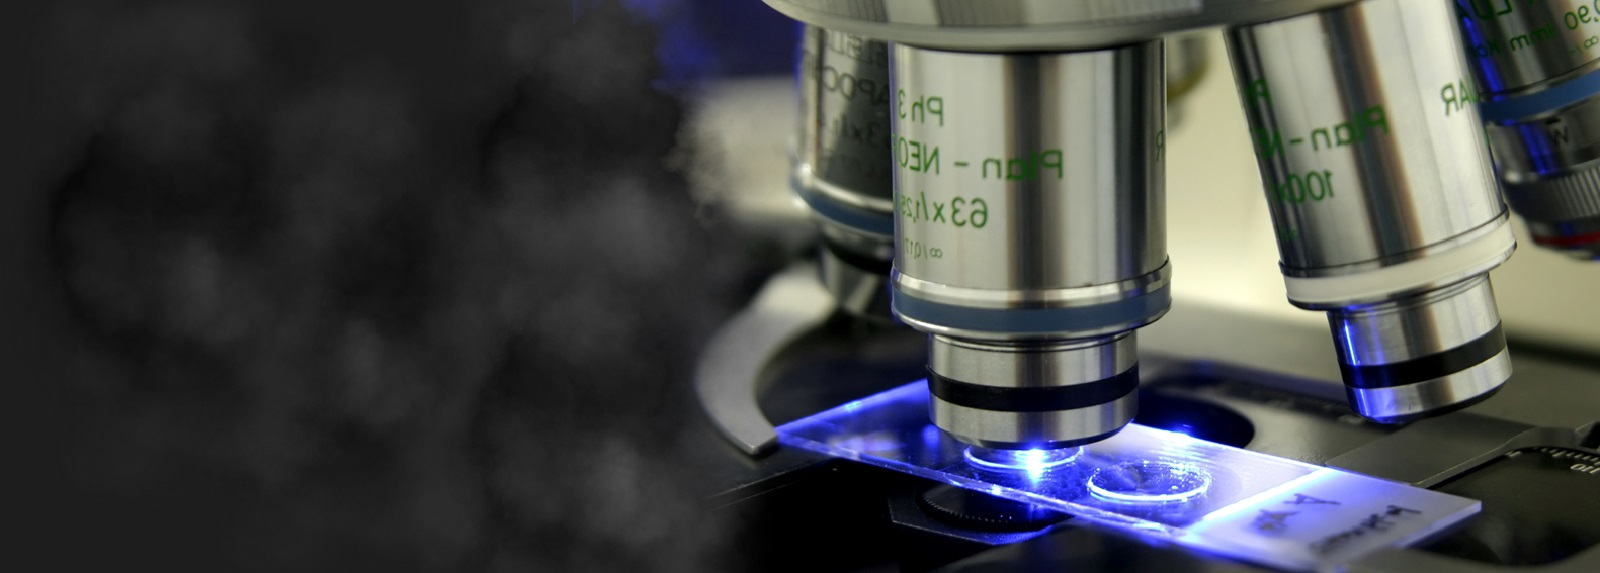 entre for Cancer Research & Cell Biology Microscope Banner 1600X575